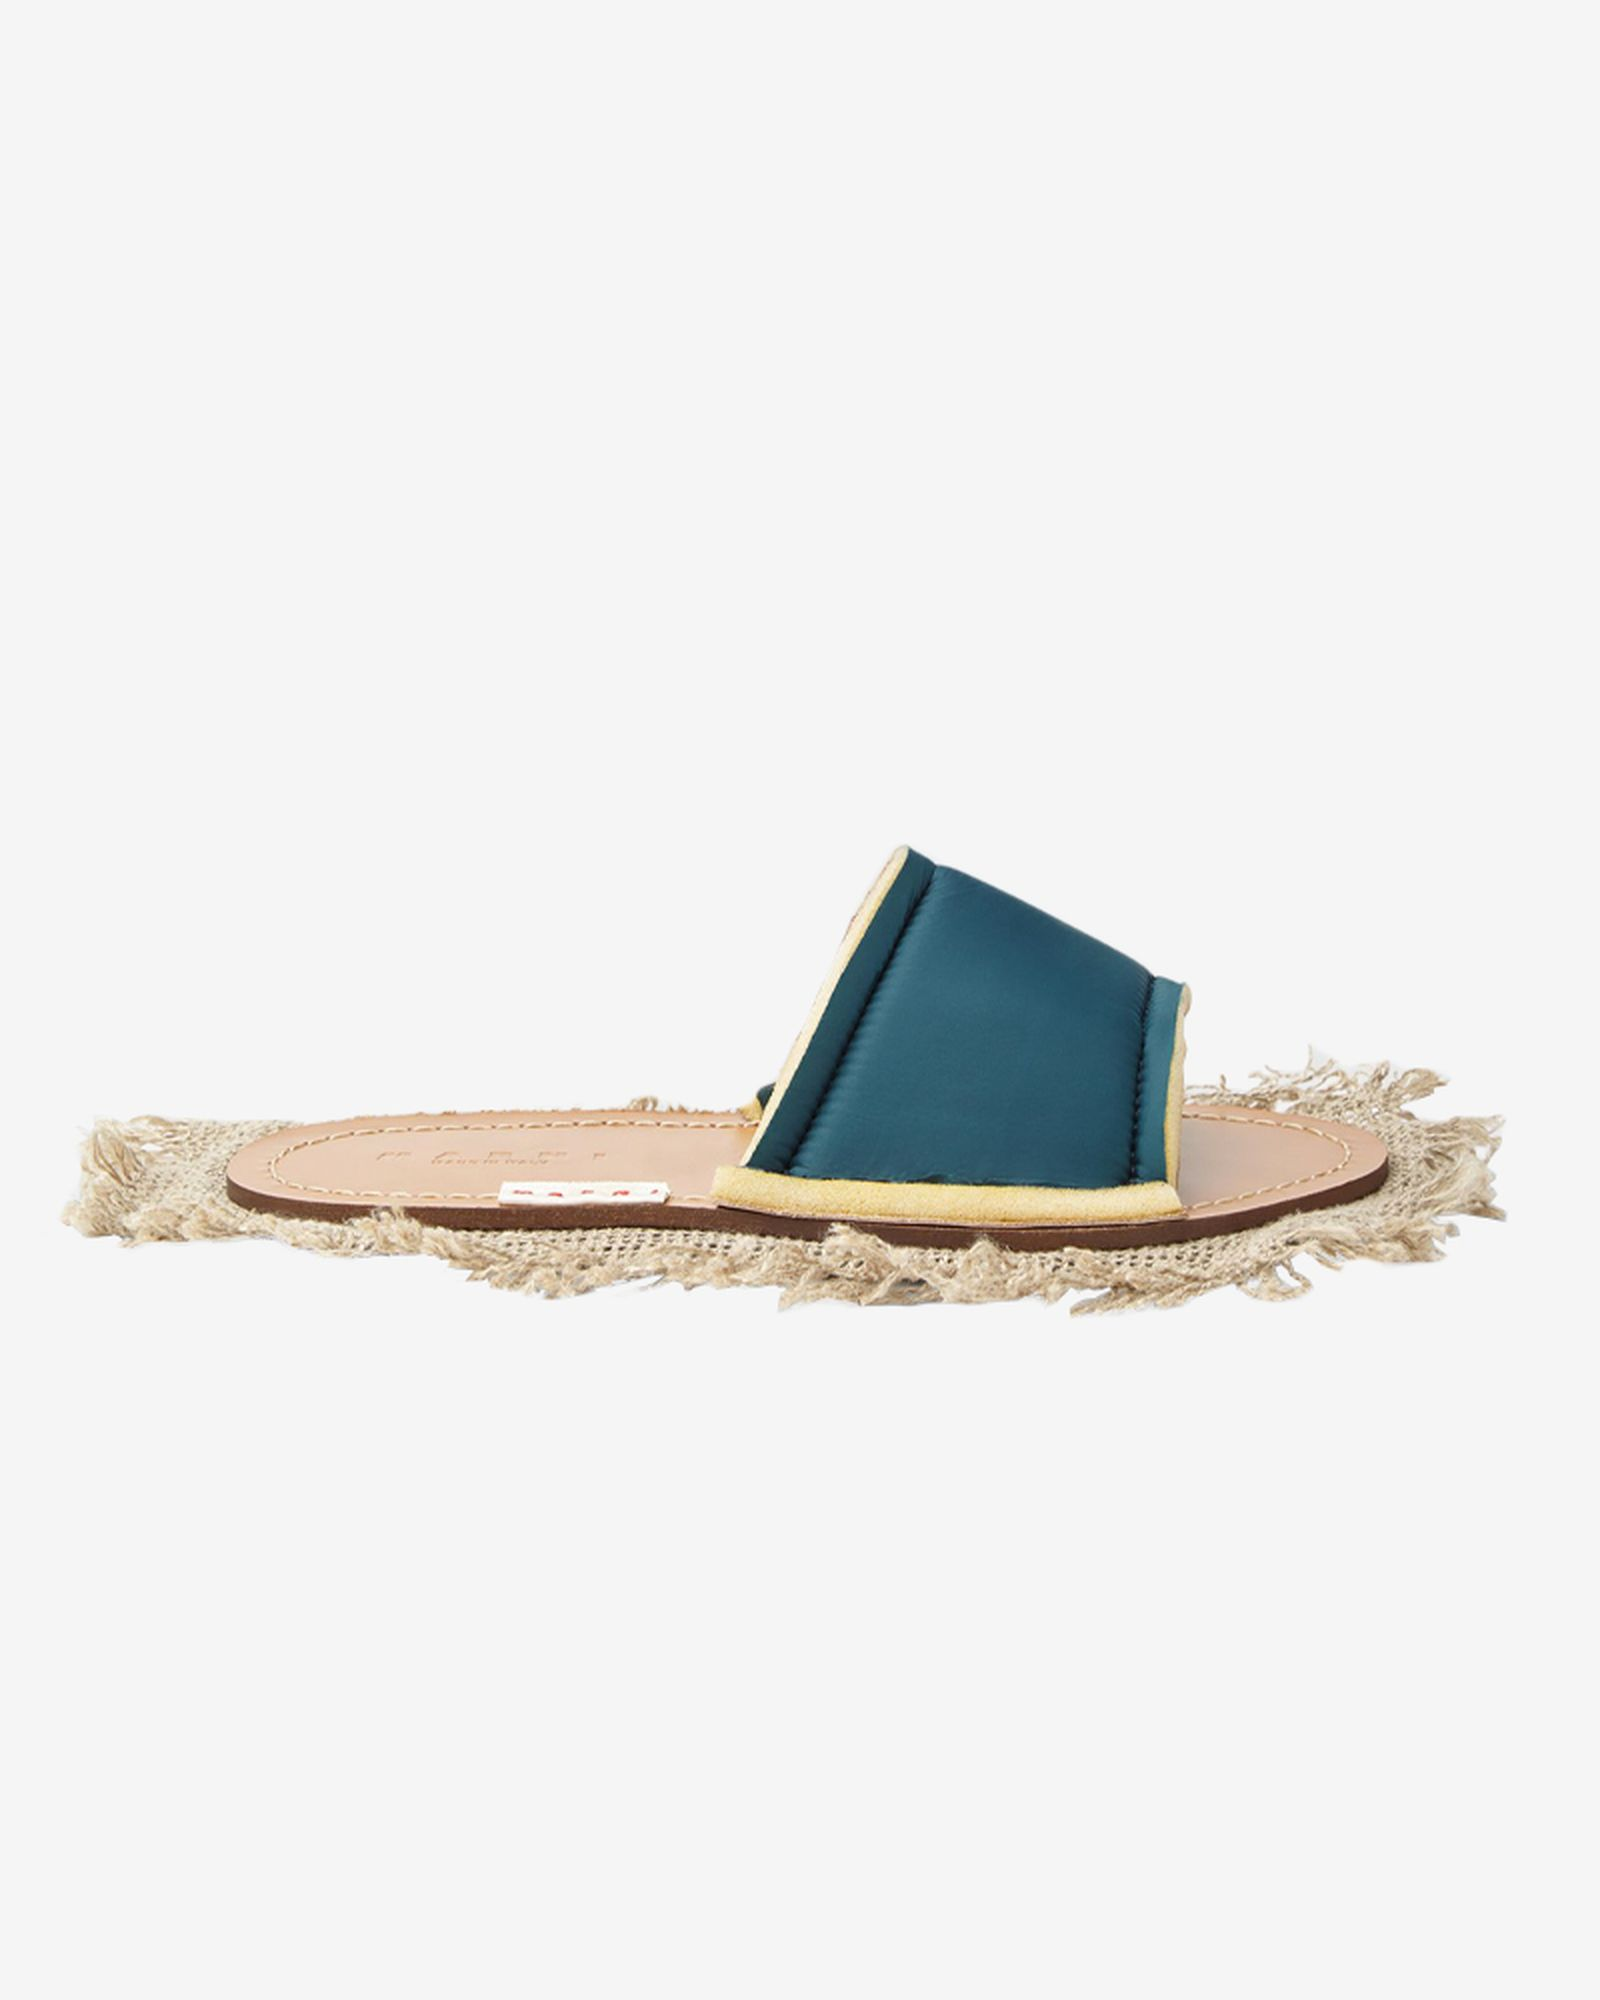 dad-sandals-roundtable-shopping-guide-06